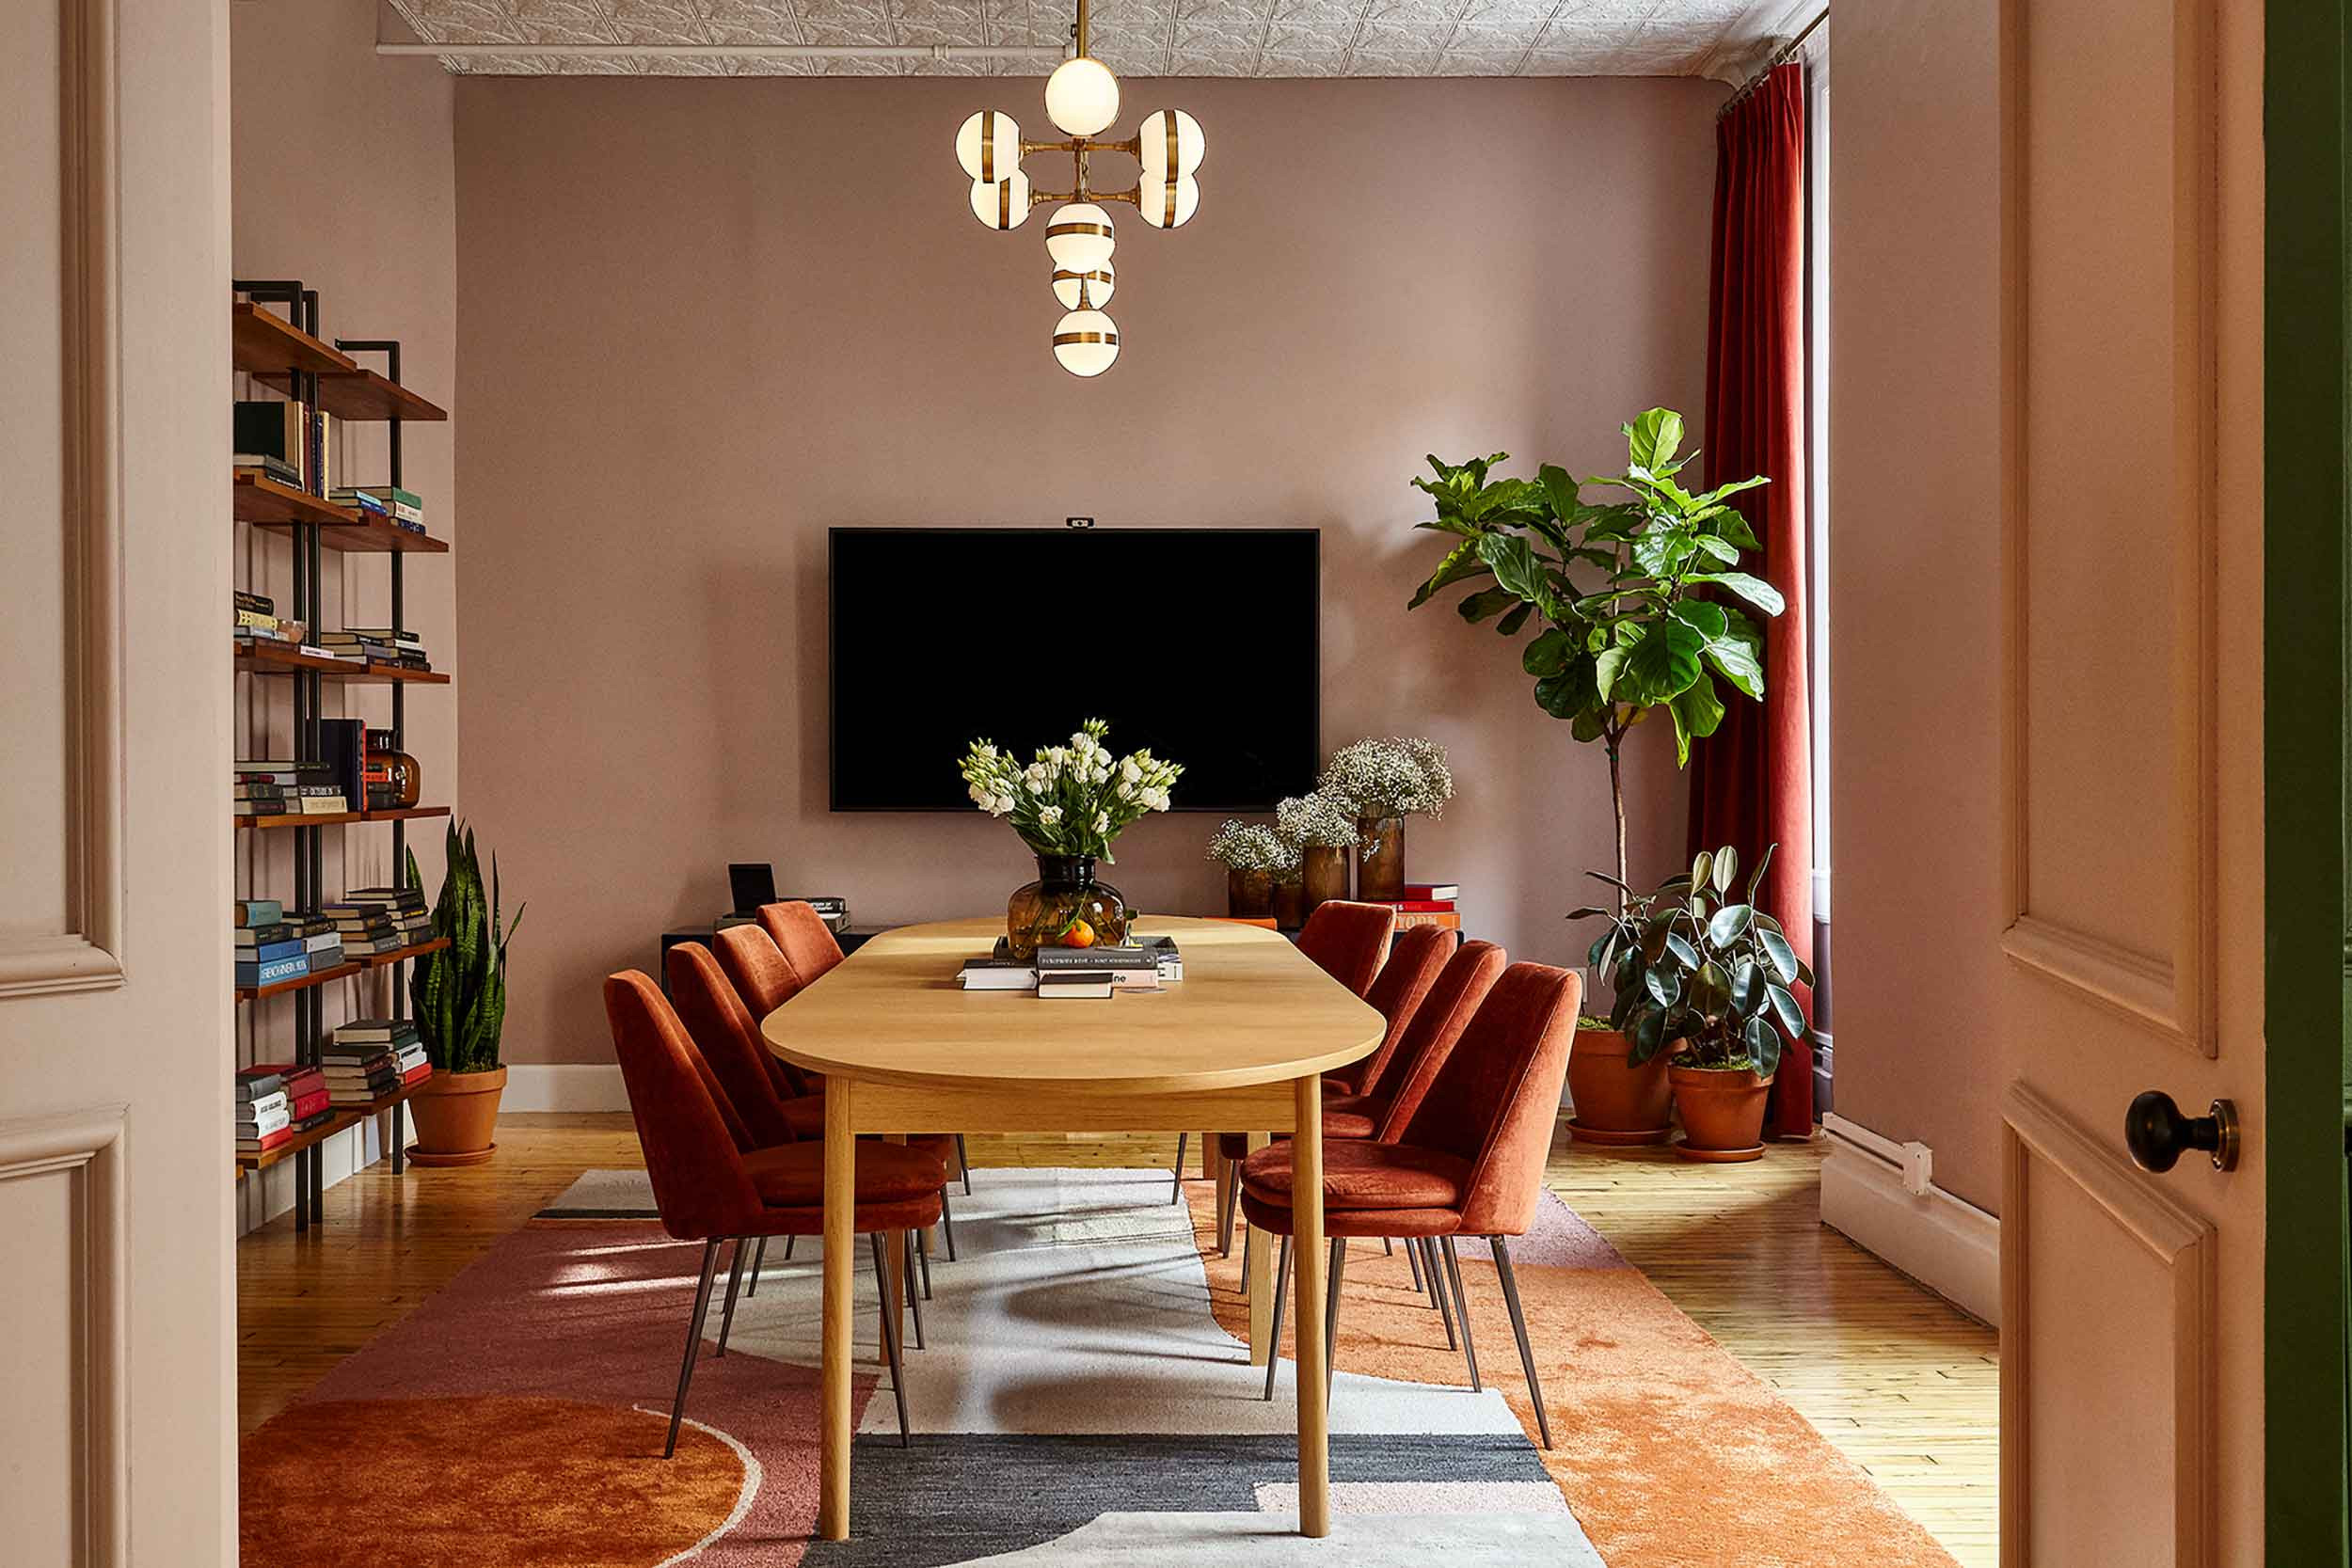 Best ideas about Paint Colors For 2019 . Save or Pin 2019 Paint Color Trends Emily Henderson Now.